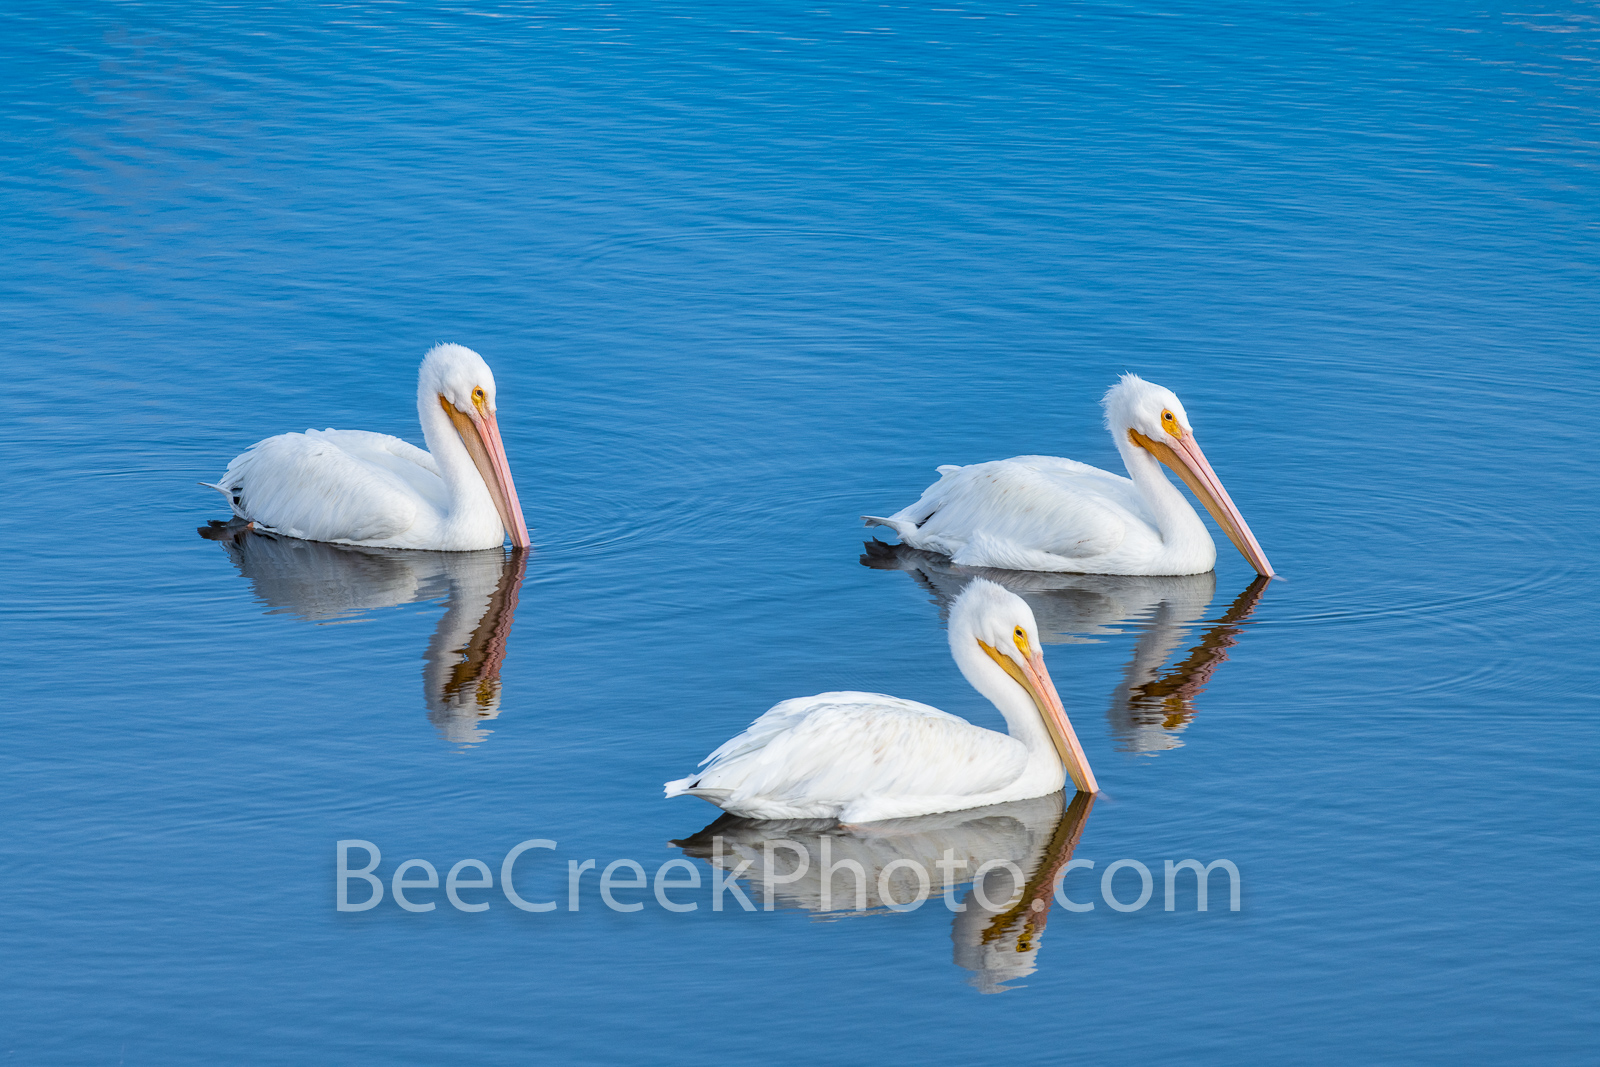 texas, coast, birds, pelicans, pelecanus erythrorhynchos, american white pelicans, winter, fall, birding, wildlife, blue, white pelicans, inlands, nature, nature preserve, bills, fish, reflections, bl, photo